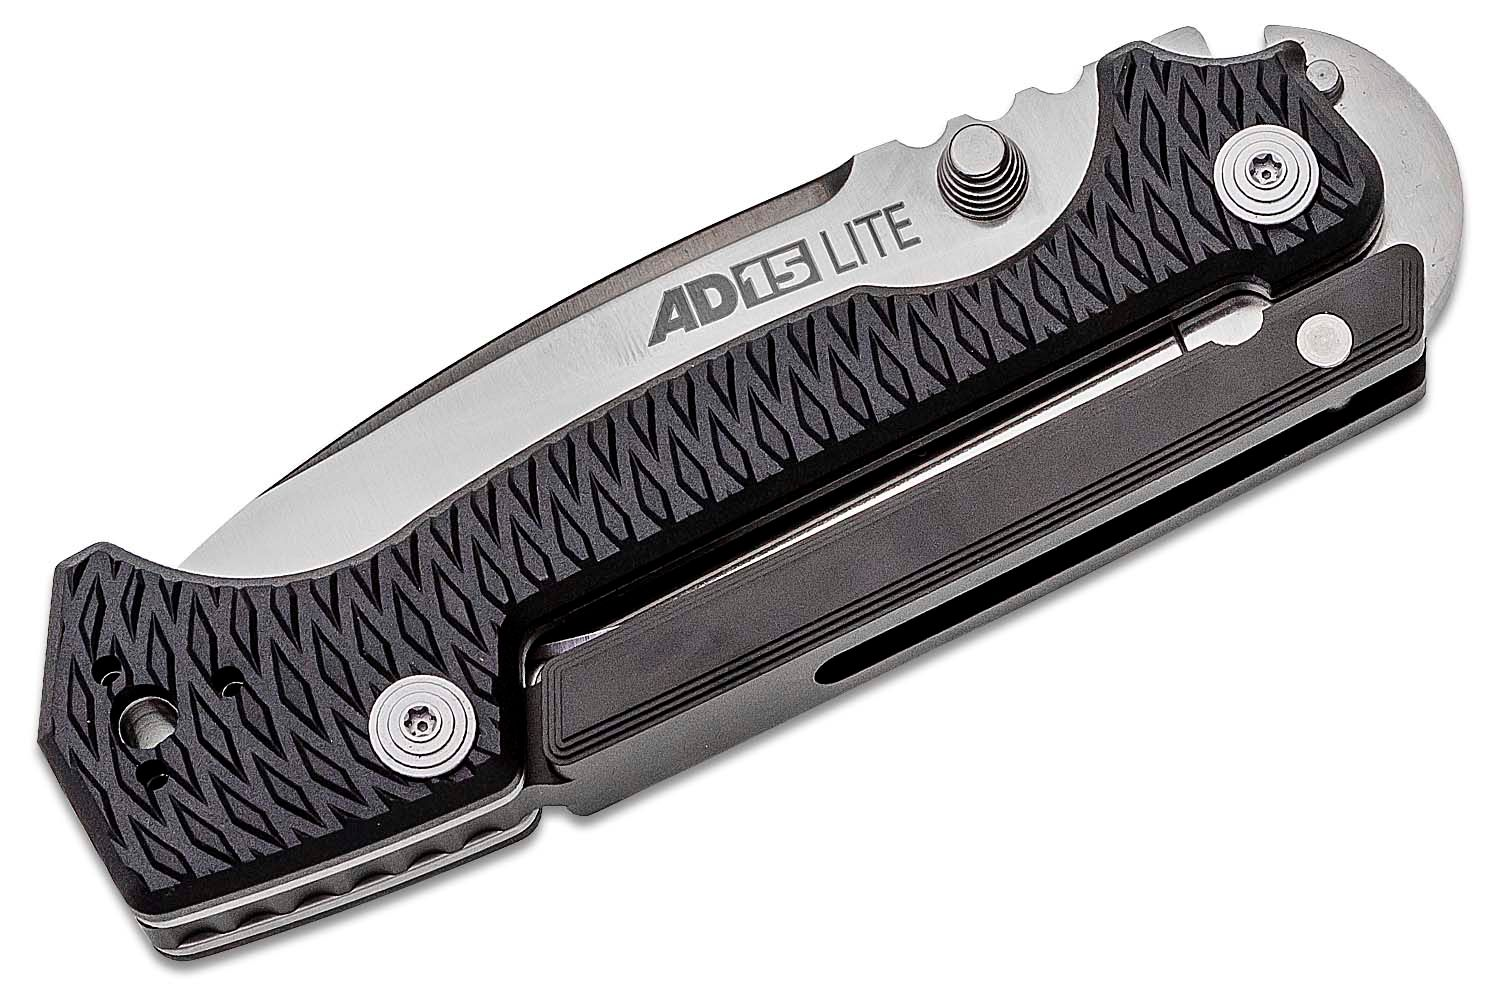 New AD-15 Lite Tactical Scorpion-Lock Folder from Cold Steel